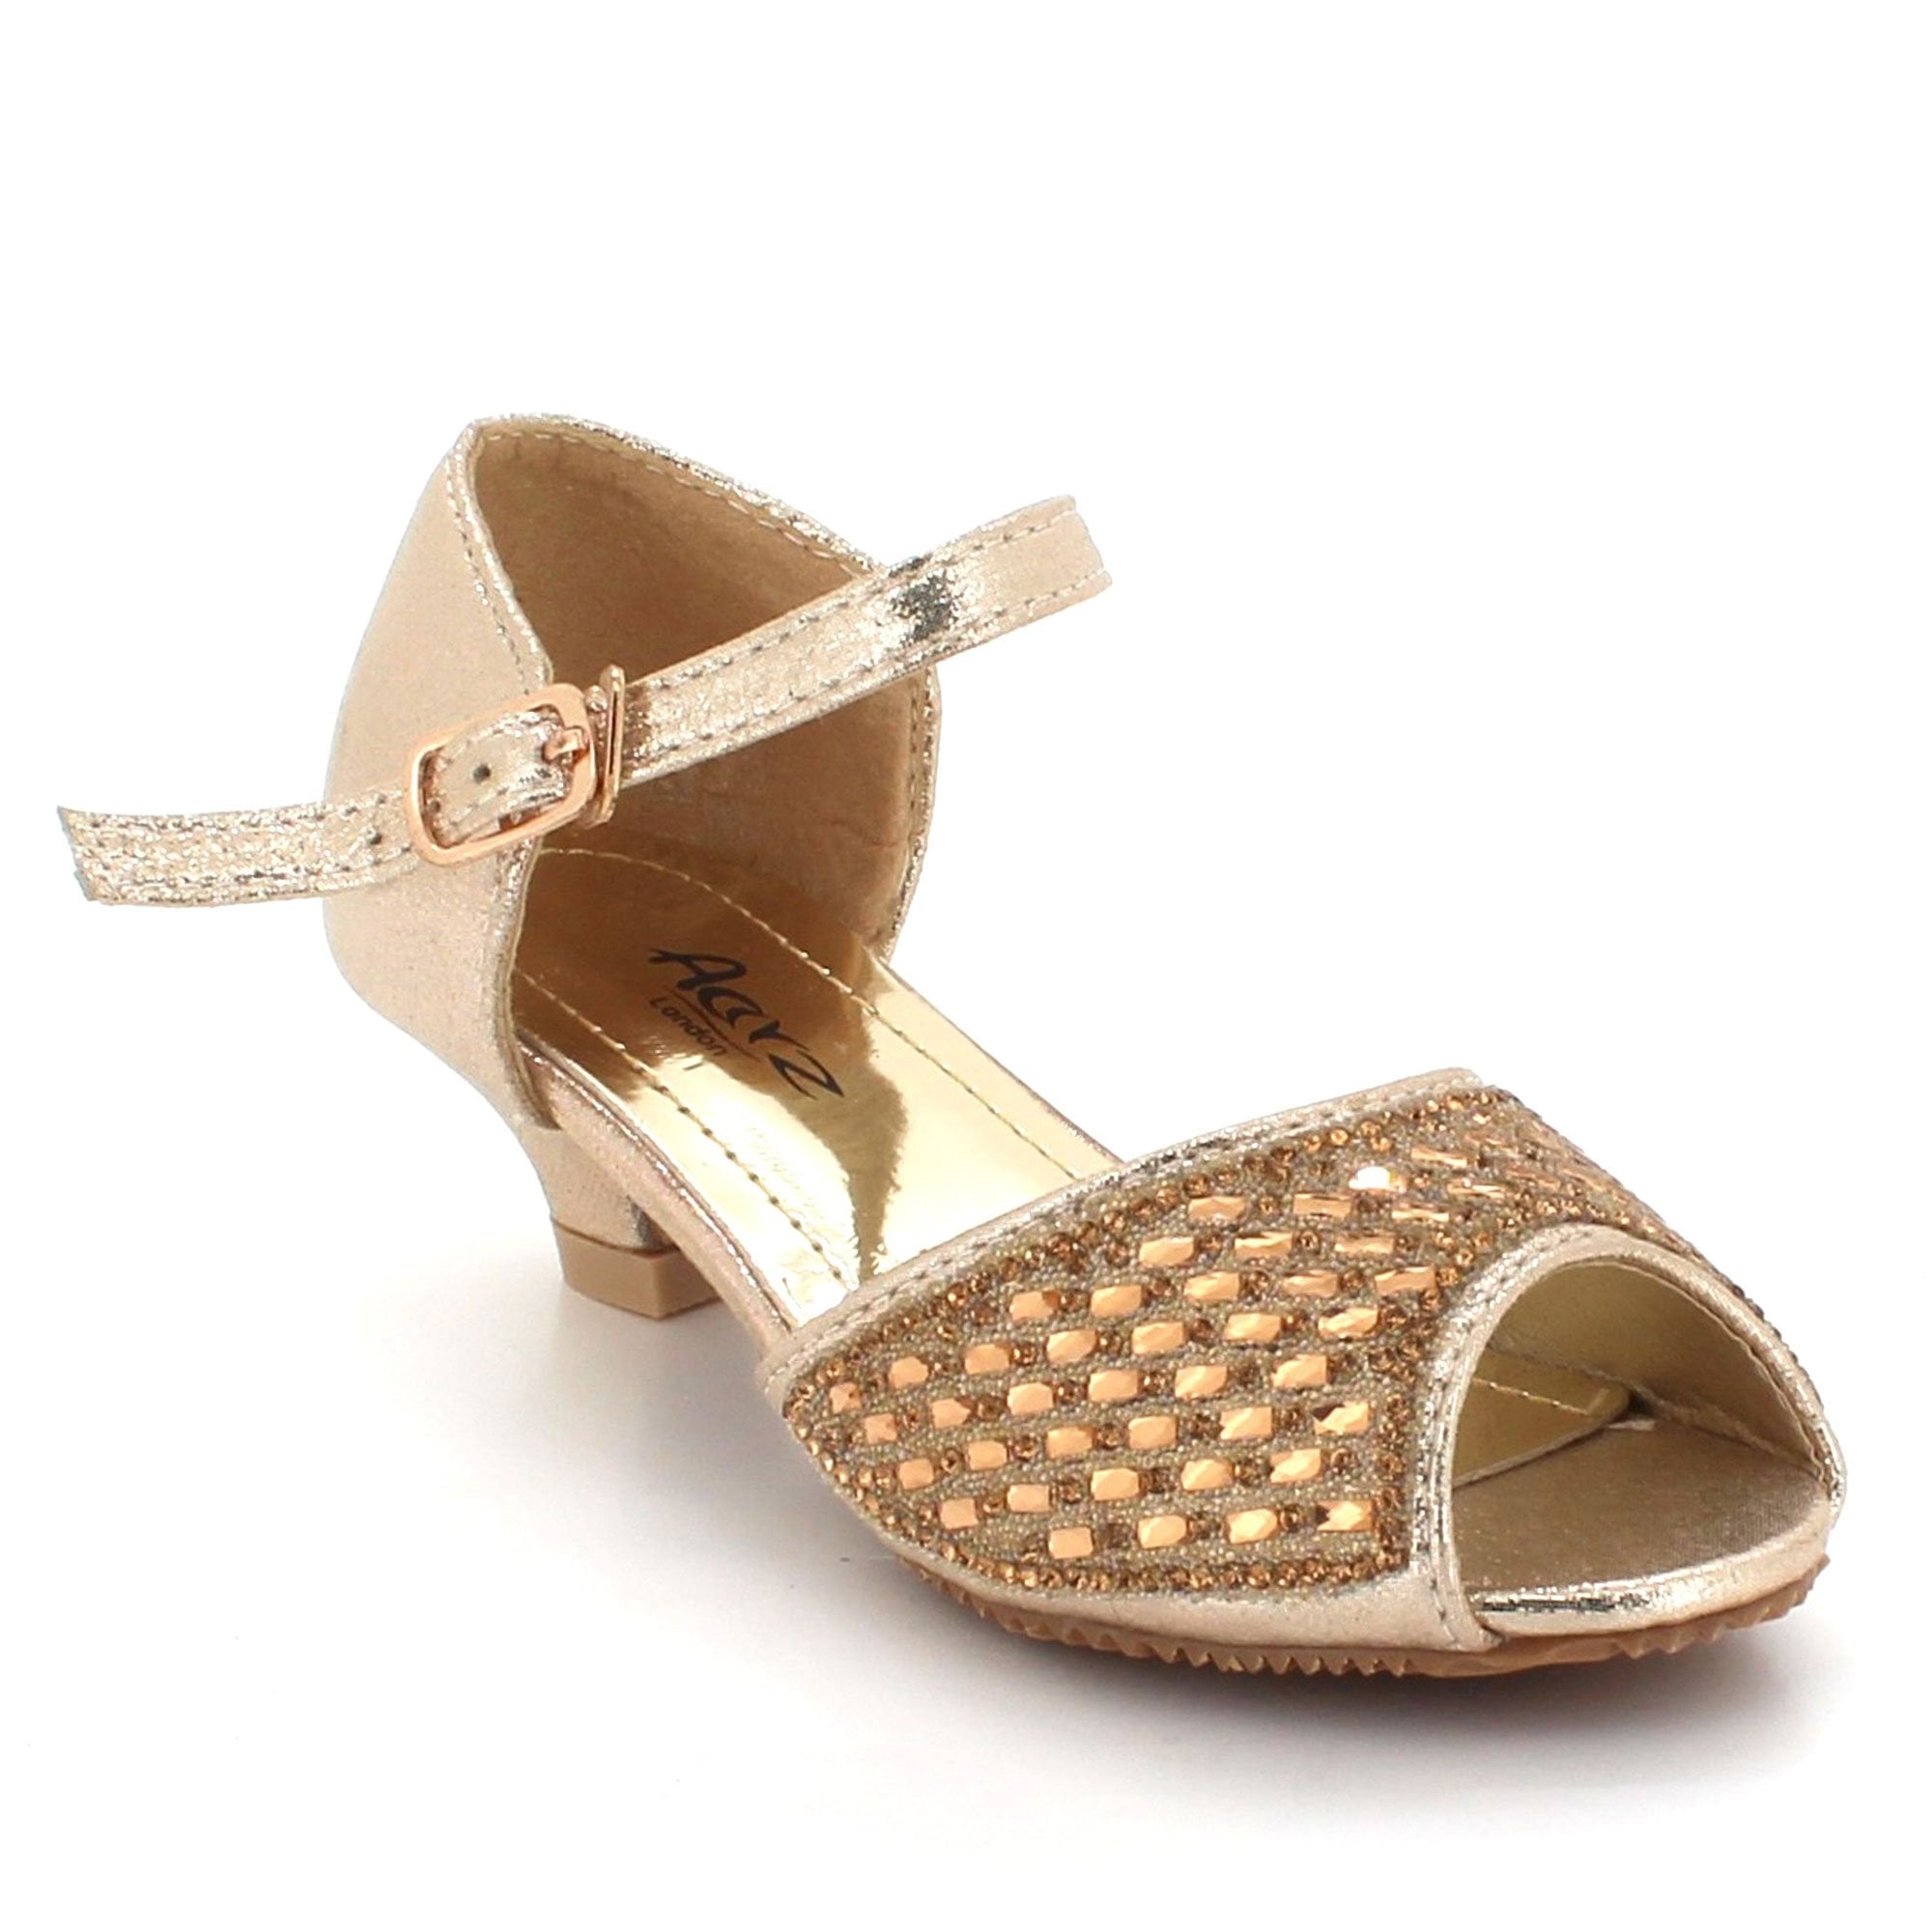 074b520763b6 Aarz London July- Sparkly Rhinestones Footwear. Kids ...